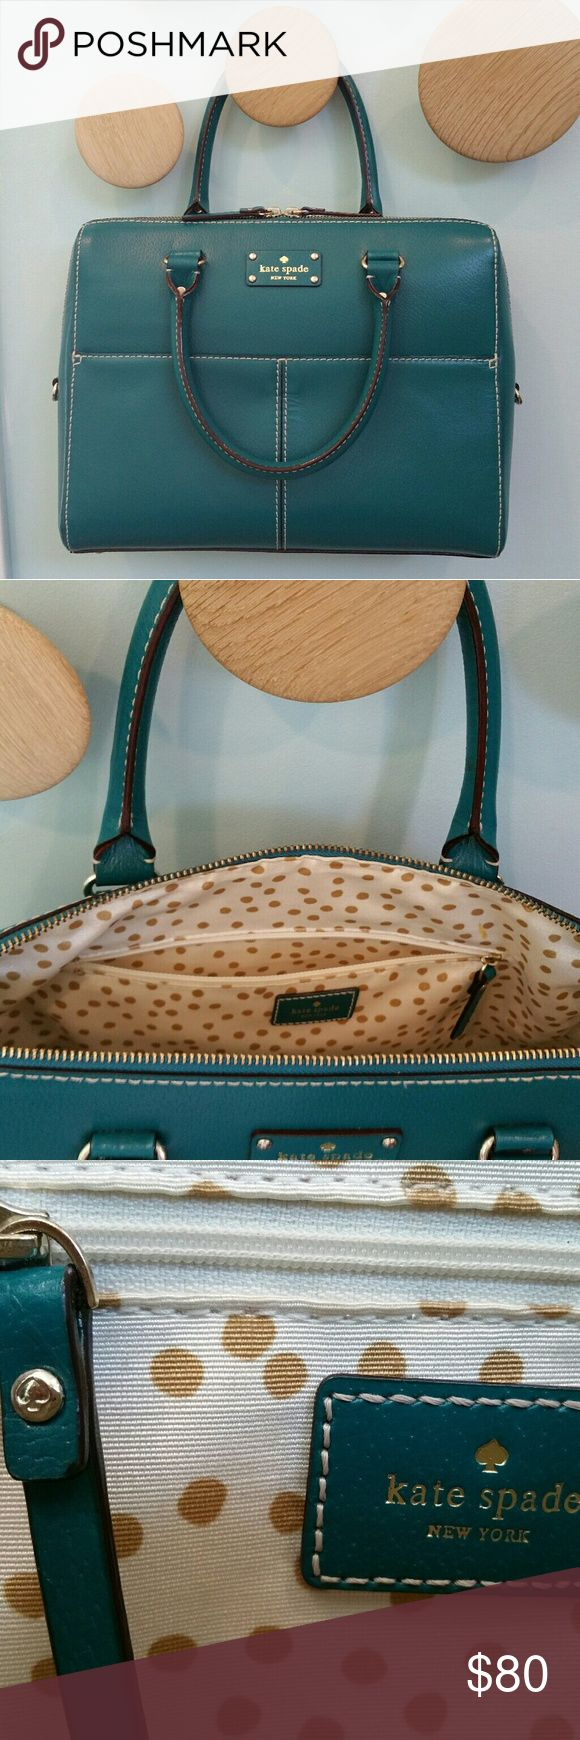 """Kate Spade Kingston Wellesley Leather Handbag Like-new teal leather KS handbag w gold polka dot lining and goldtone hardware with spade stamps. Leather pull zips on each side to meet in the middle,  or can zip one all the way over. Dual top handles,  approx. 5"""" drop. No exterior scratches, scuffs, flaws, etc. One stain in the interior above the zip pocket (see last pic). Inside has one zip pocket and two non-zip pockets for phone, etc. 13""""W x 10.5""""H x 5""""D (at bottomof bag; tapers to alost…"""